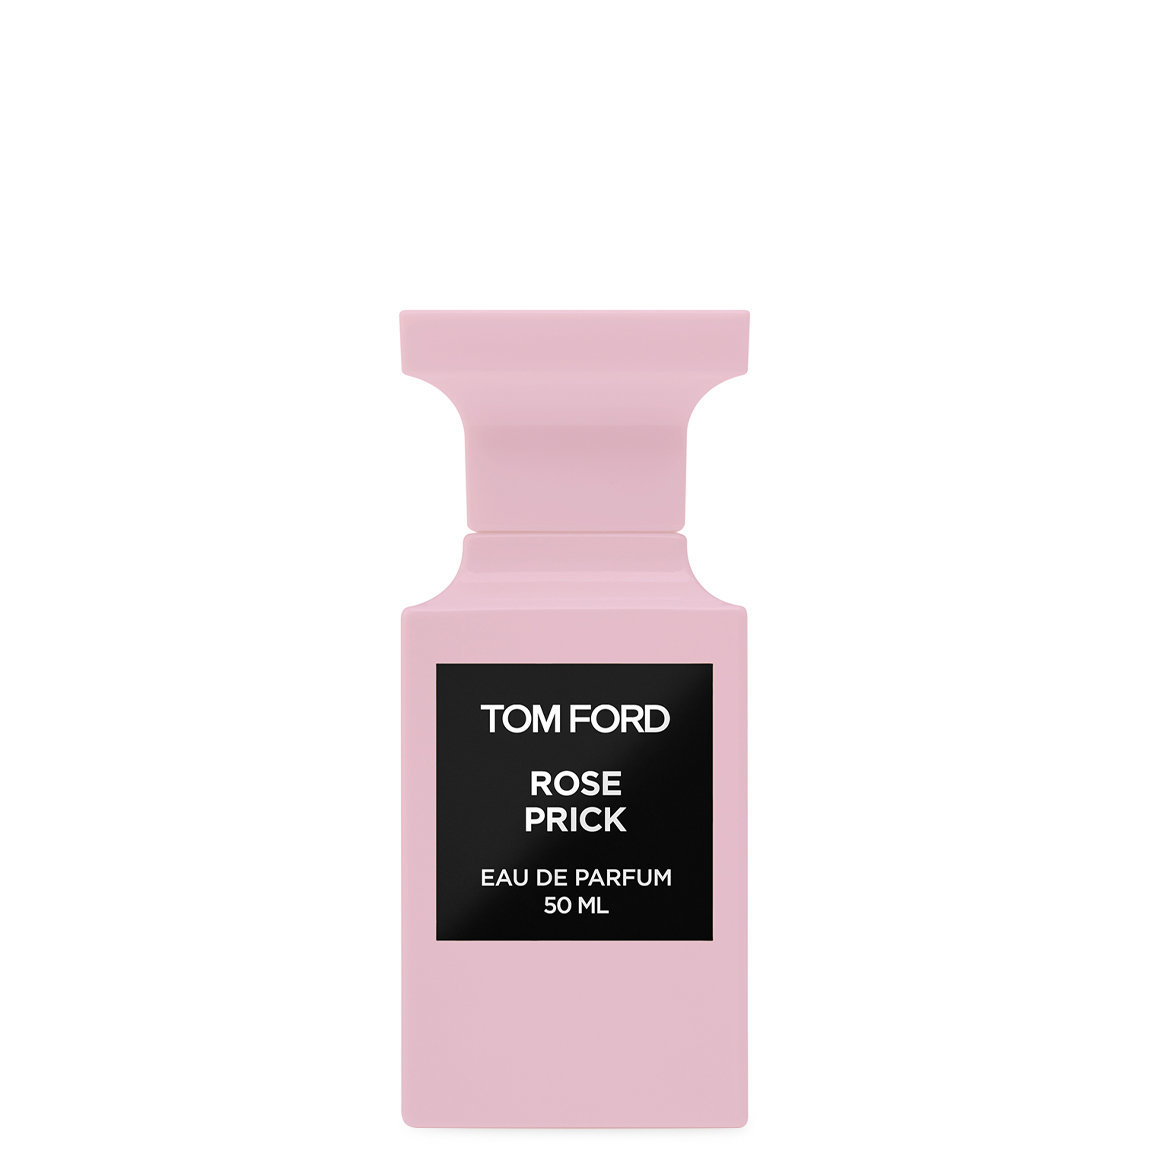 TOM FORD Rose Prick 50 ml product swatch.